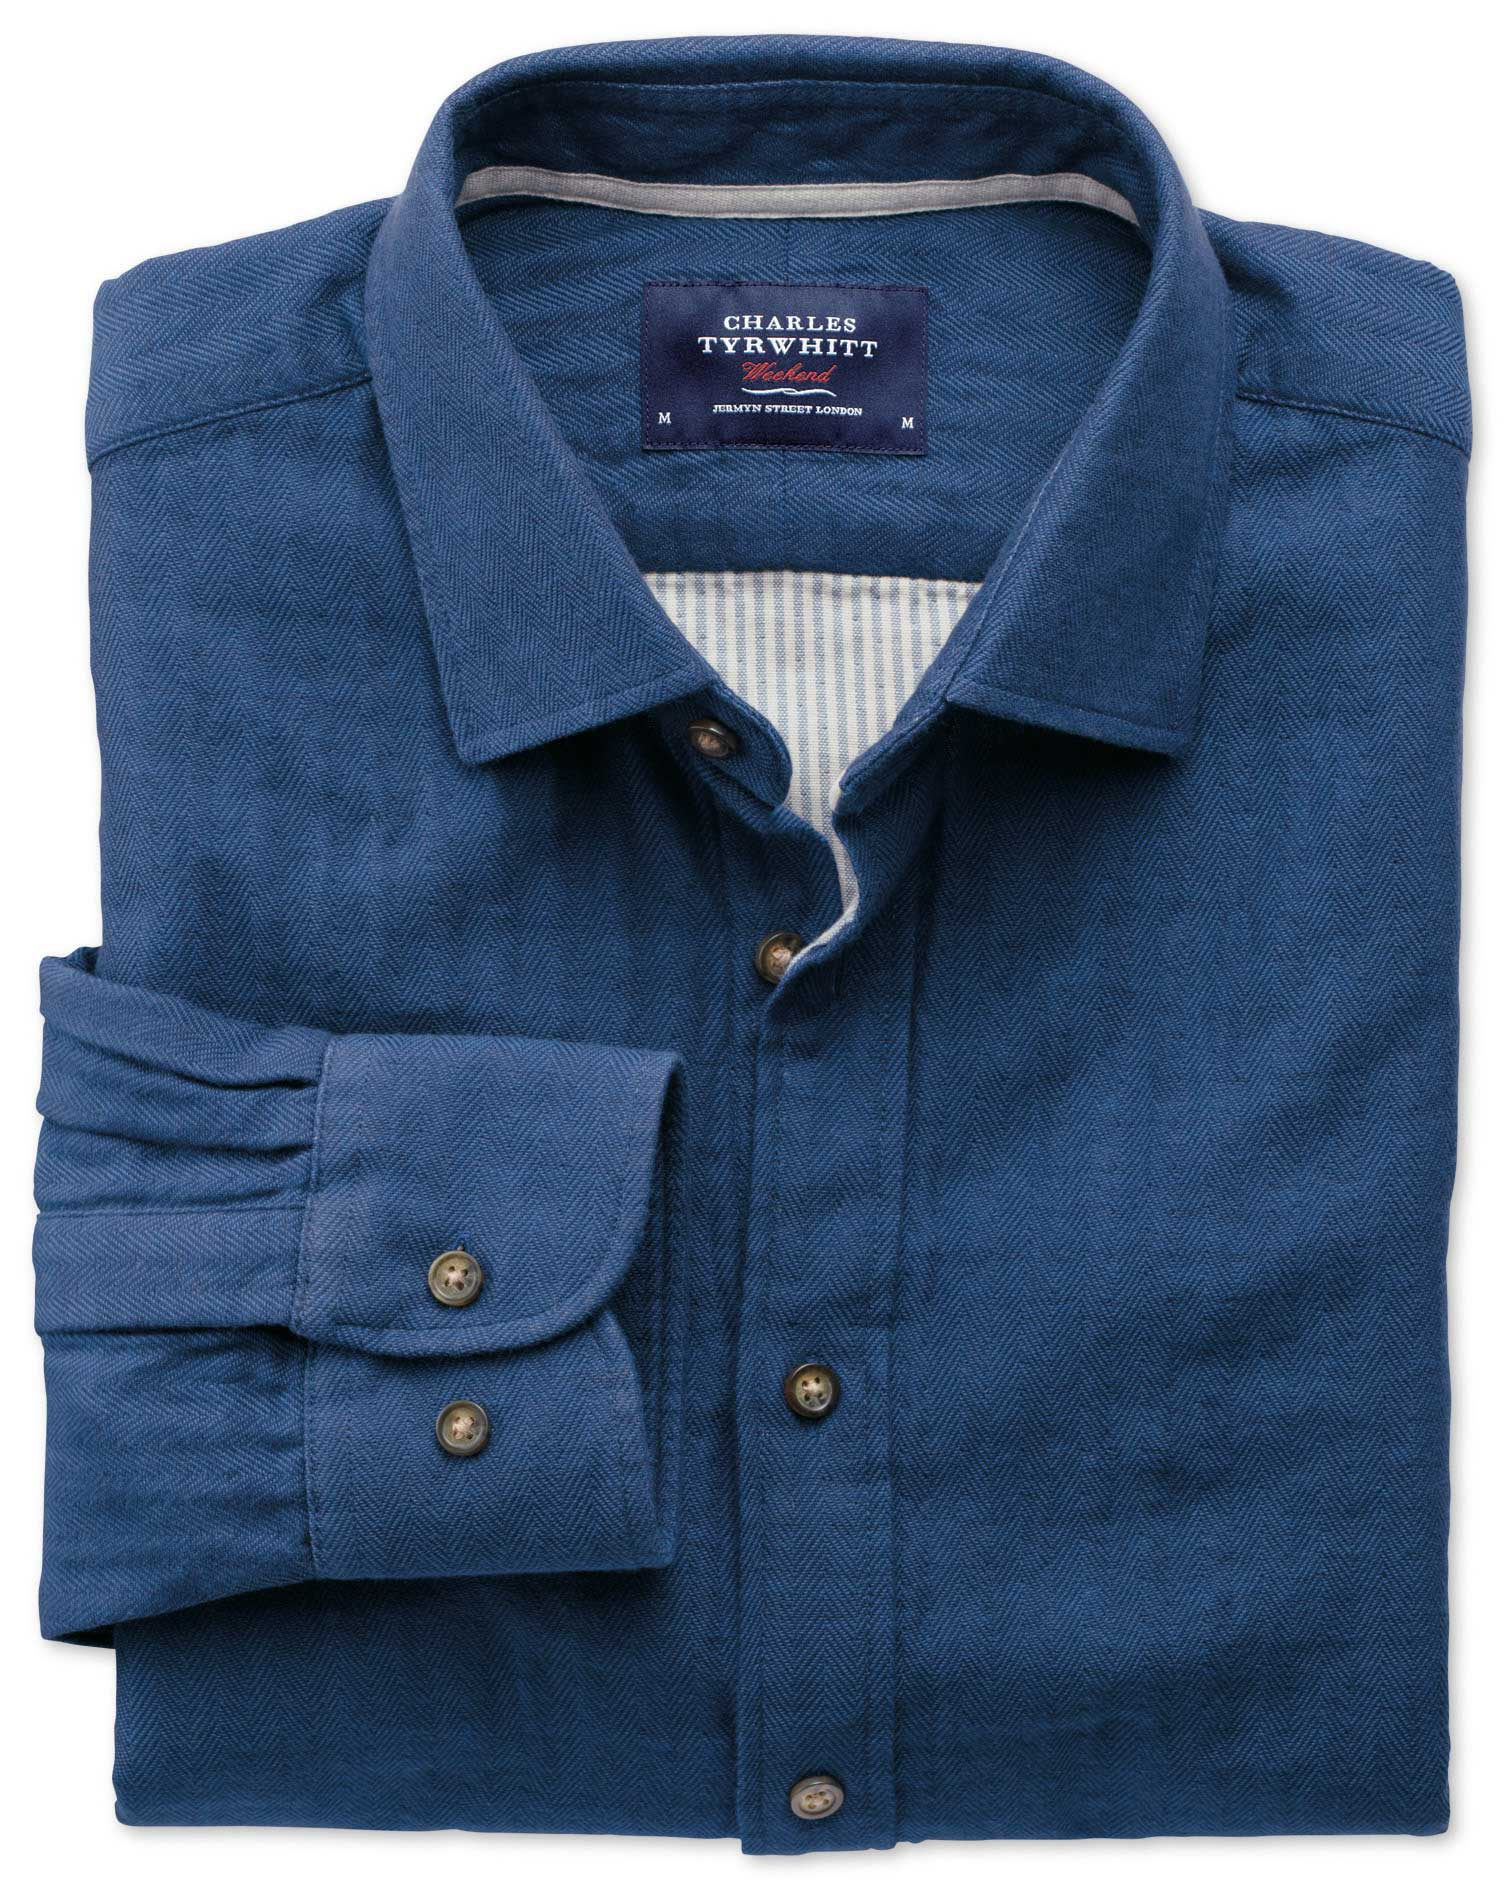 Extra Slim Fit Blue Double Face Cotton Shirt Single Cuff Size Medium by Charles Tyrwhitt